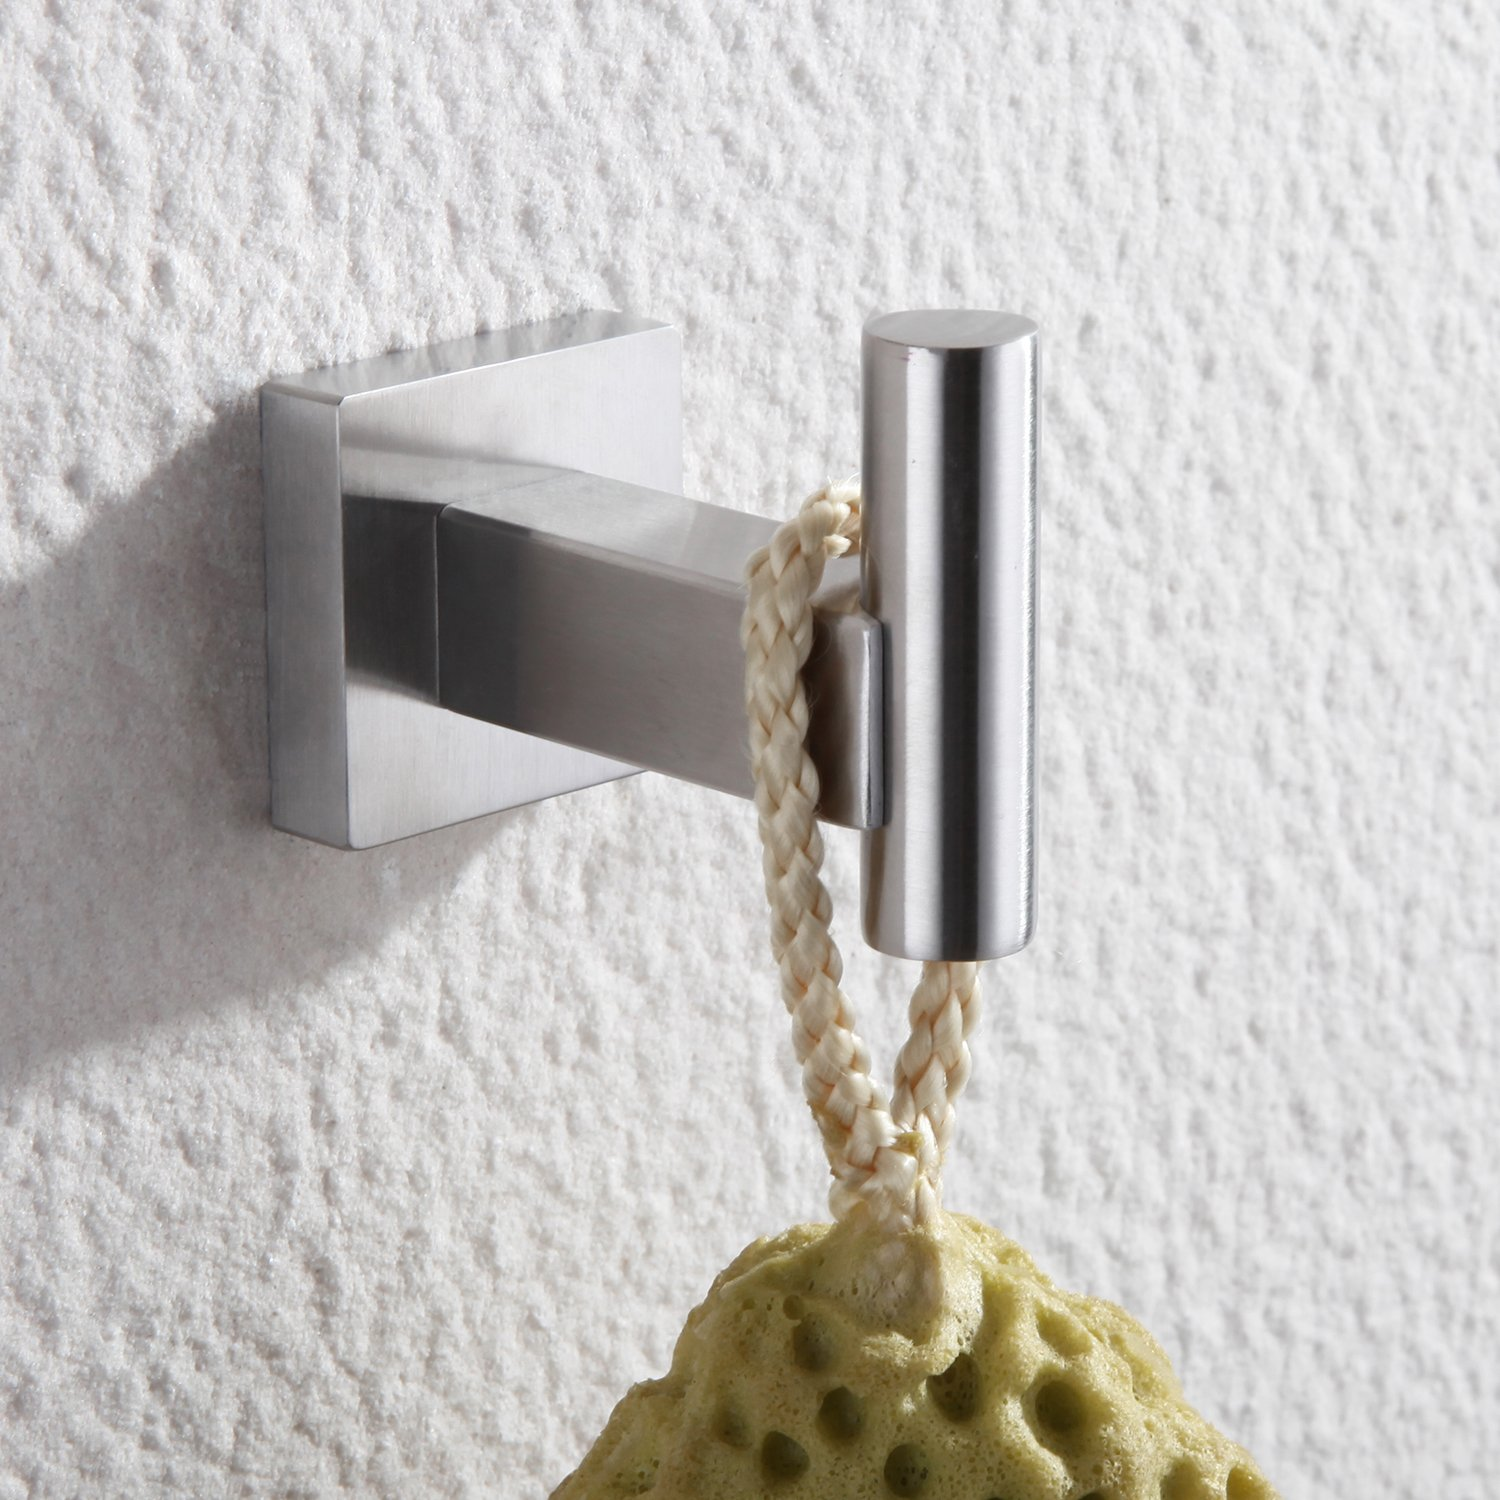 . Haiying Single Towel Hook for Bathroom Robe Hook in Shower Hook SUS 304  Stainless Steel Modern Square Style Wall Mount Brushed Finish